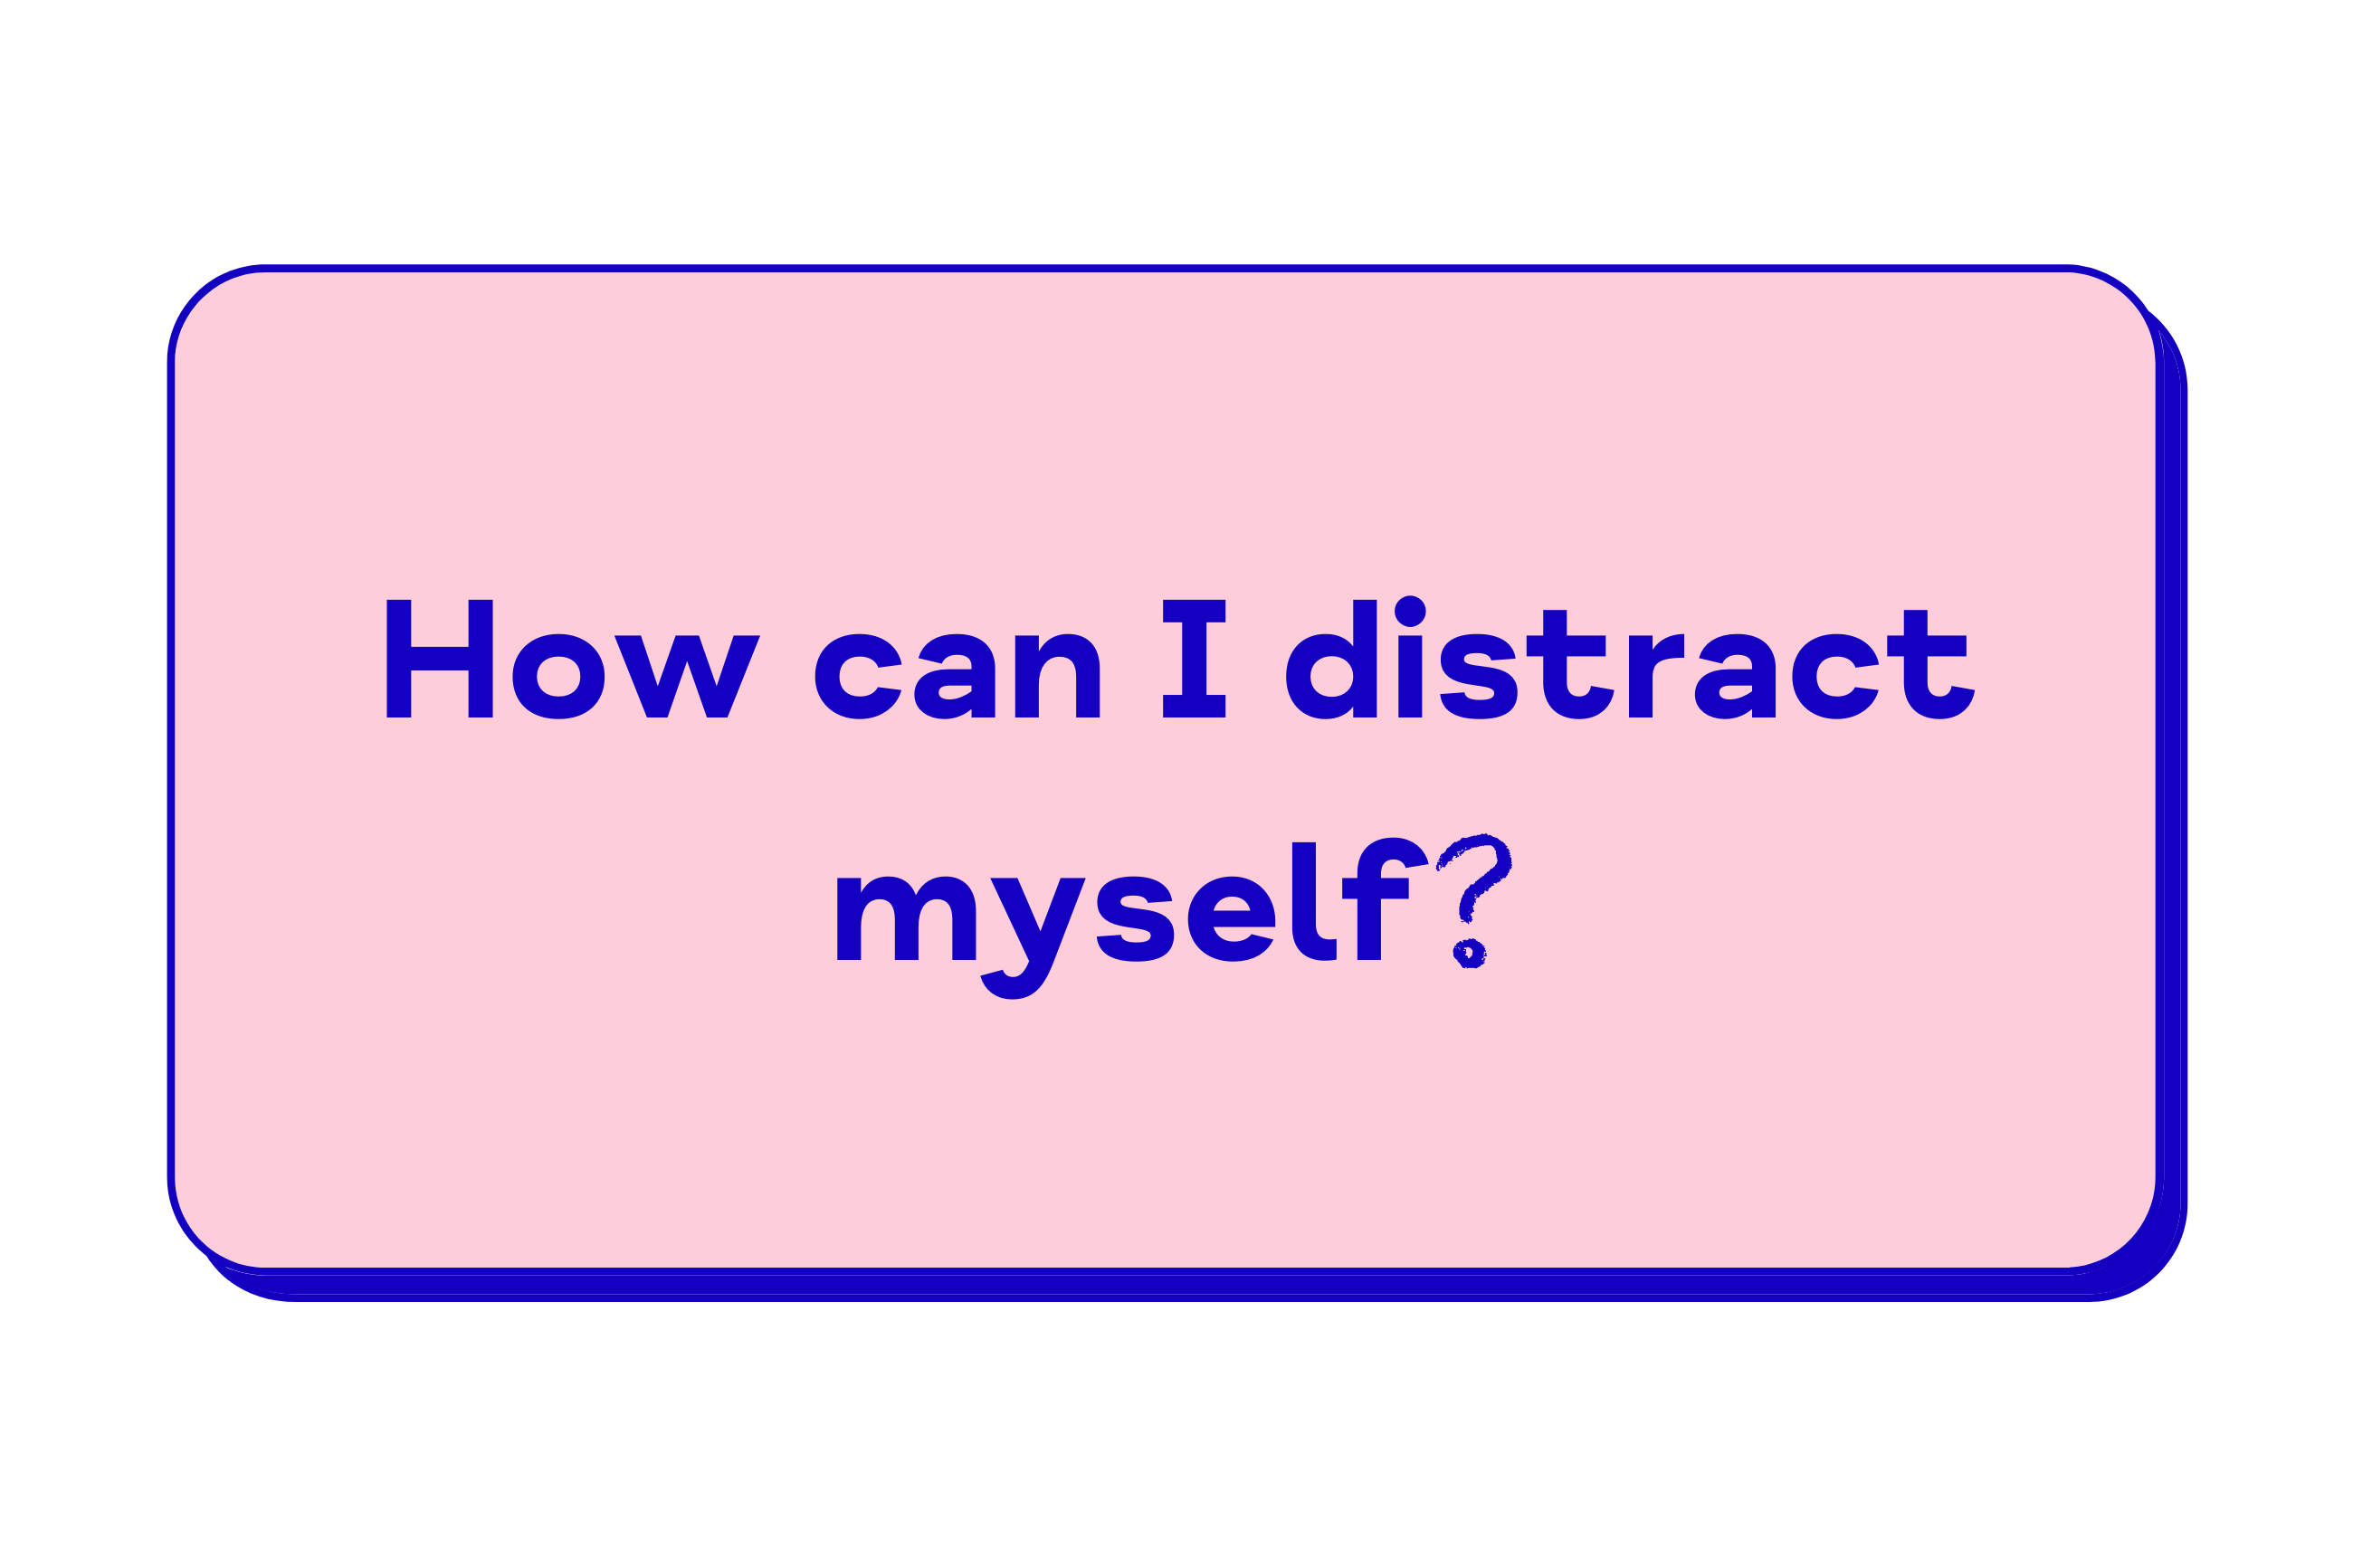 How can I distract myself?